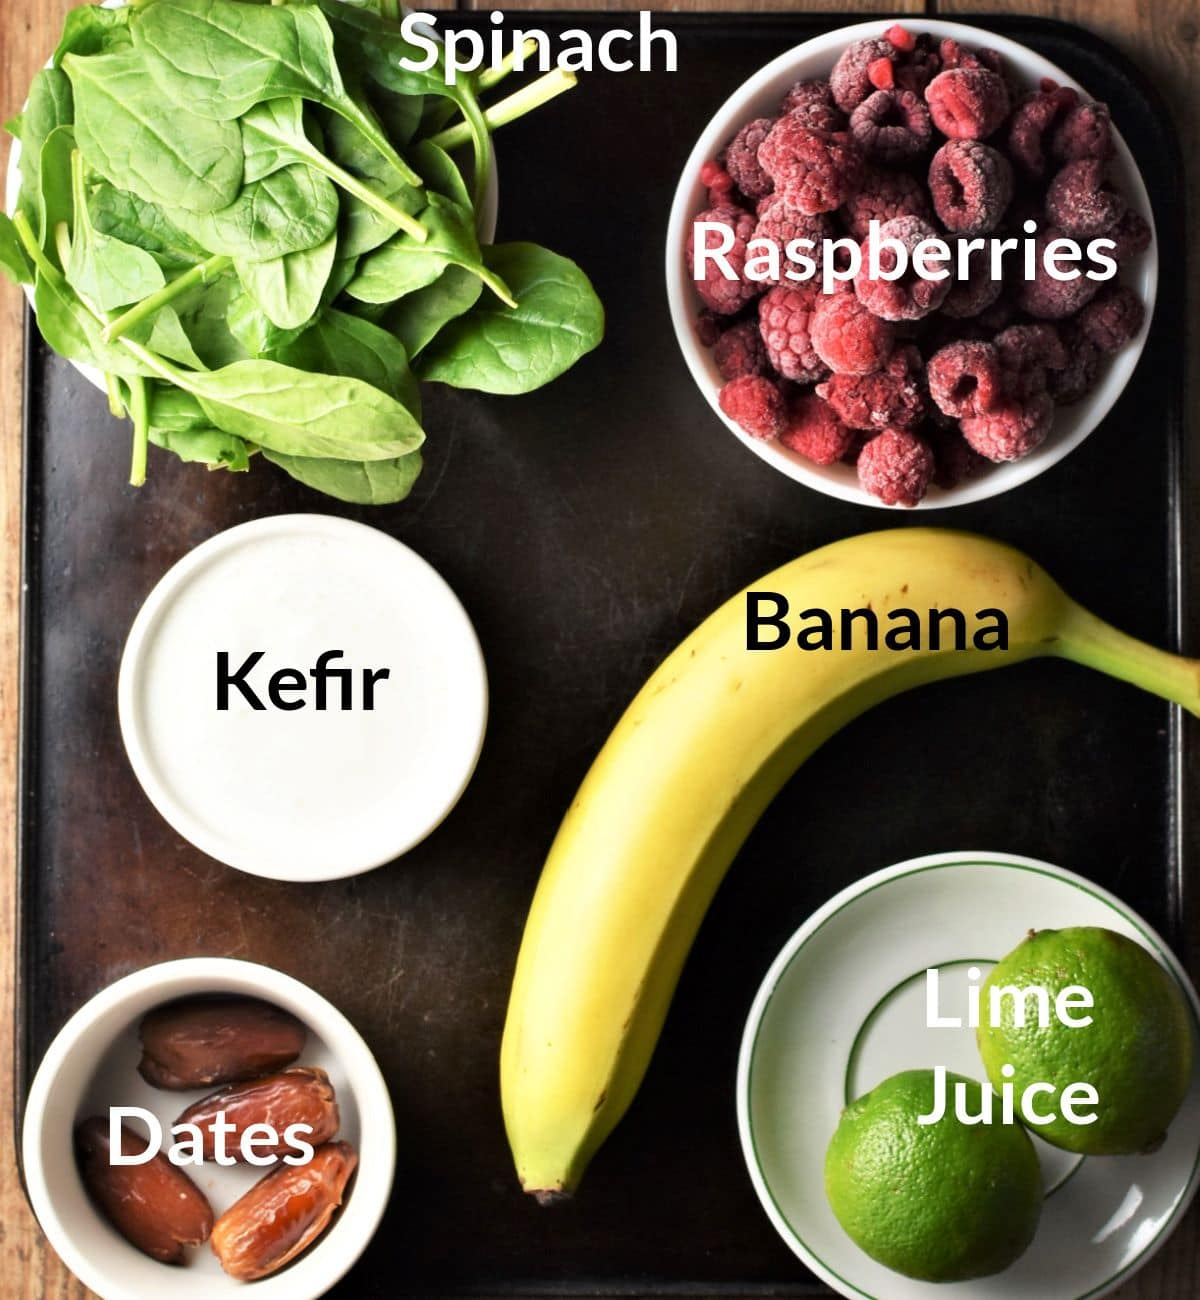 Ingredients for making spinach and raspberry smoothie in individual dishes.